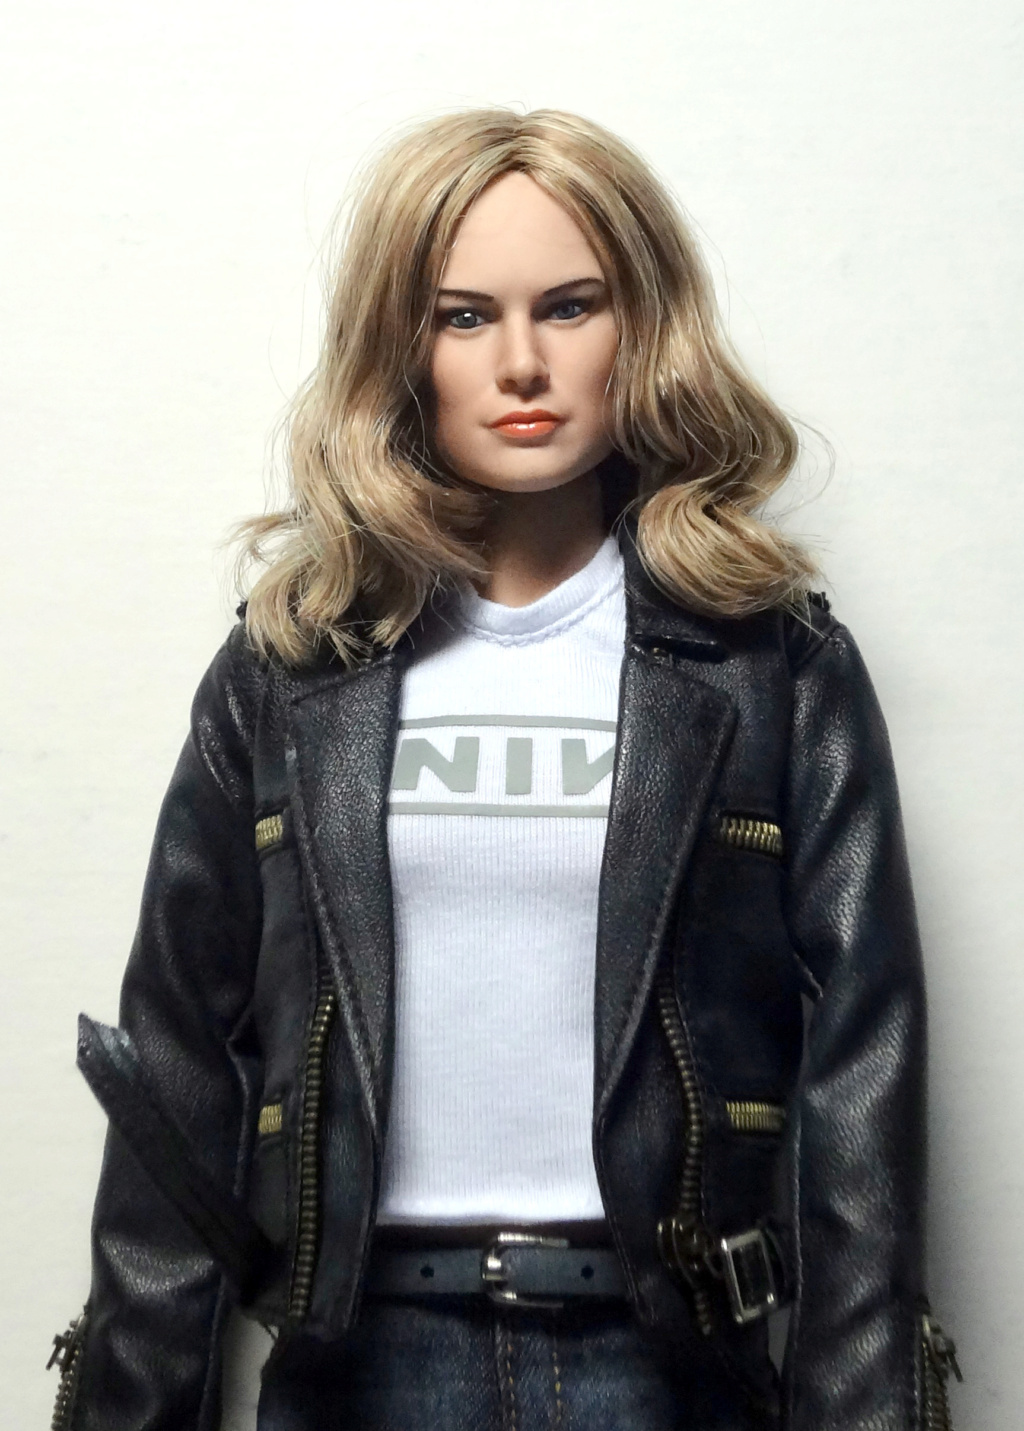 SWToys - NEW PRODUCT: Swtoys FS028 1/6 Scale Danvers figure Dsc00916